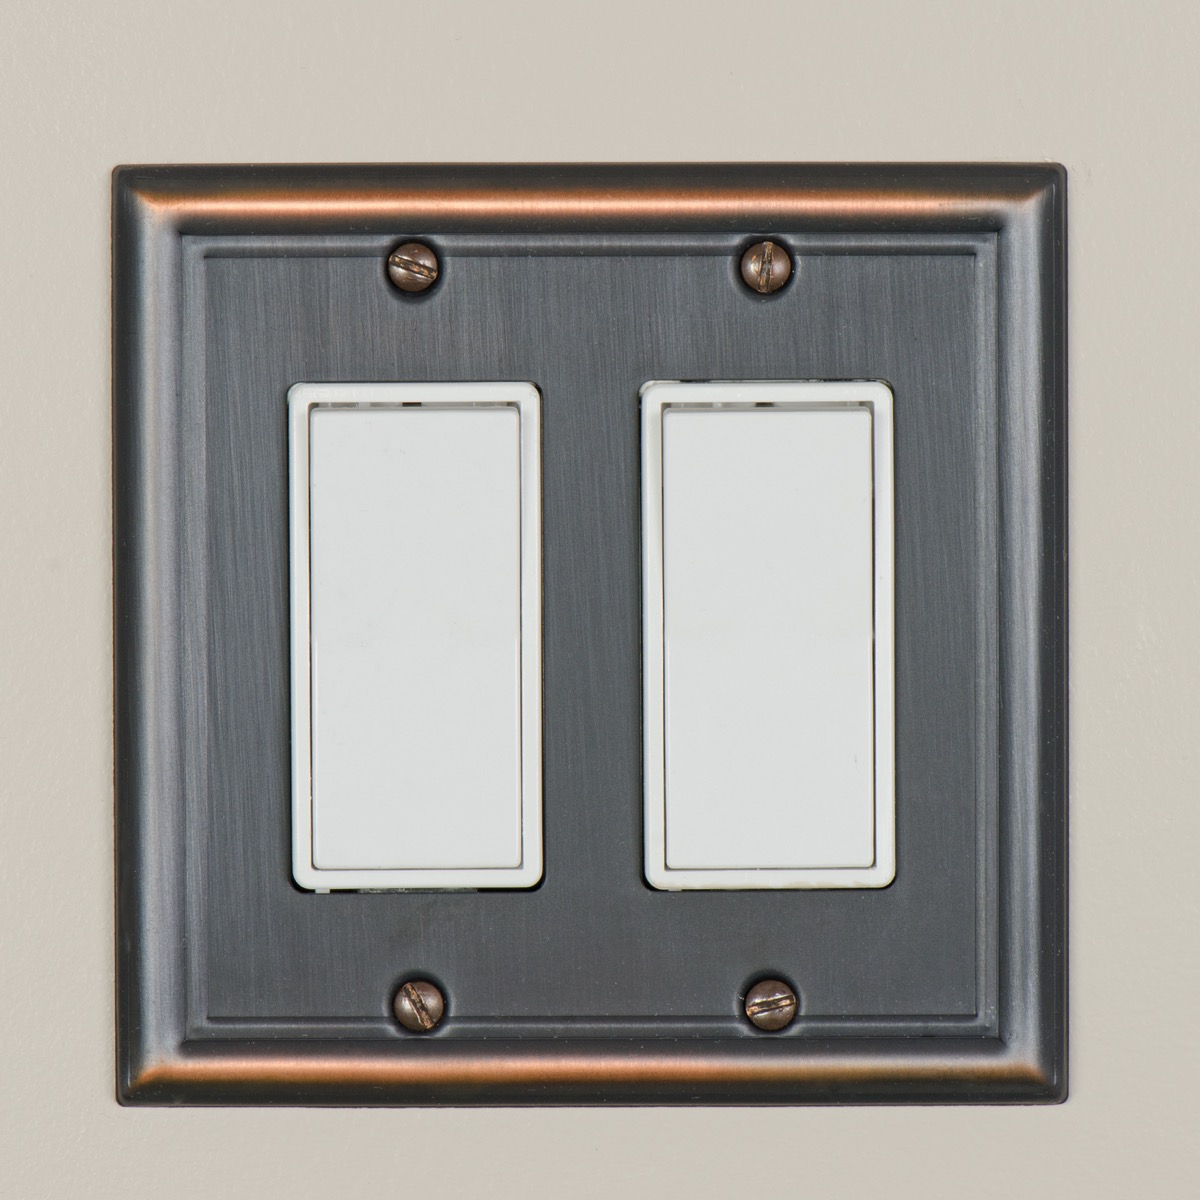 Stainless steel light switch plate